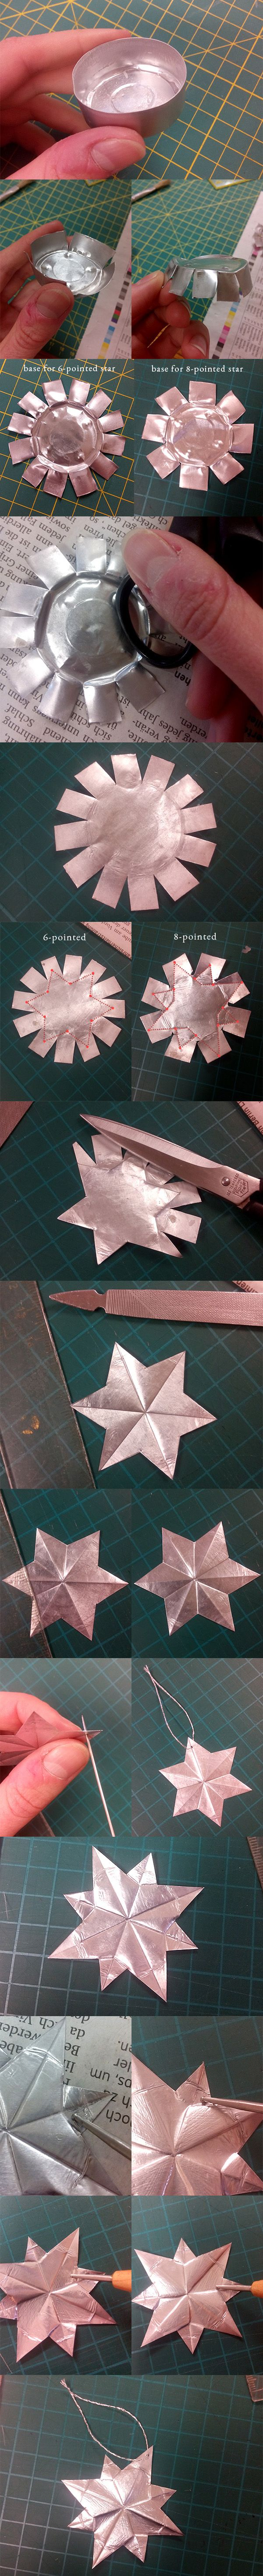 christmas ornaments / stars made from leftover tea candle aluminium cups written instructions here http://cranes-journey.blogspot.de/2014/12/ornaments-from-left-over-tea-light-cups.html